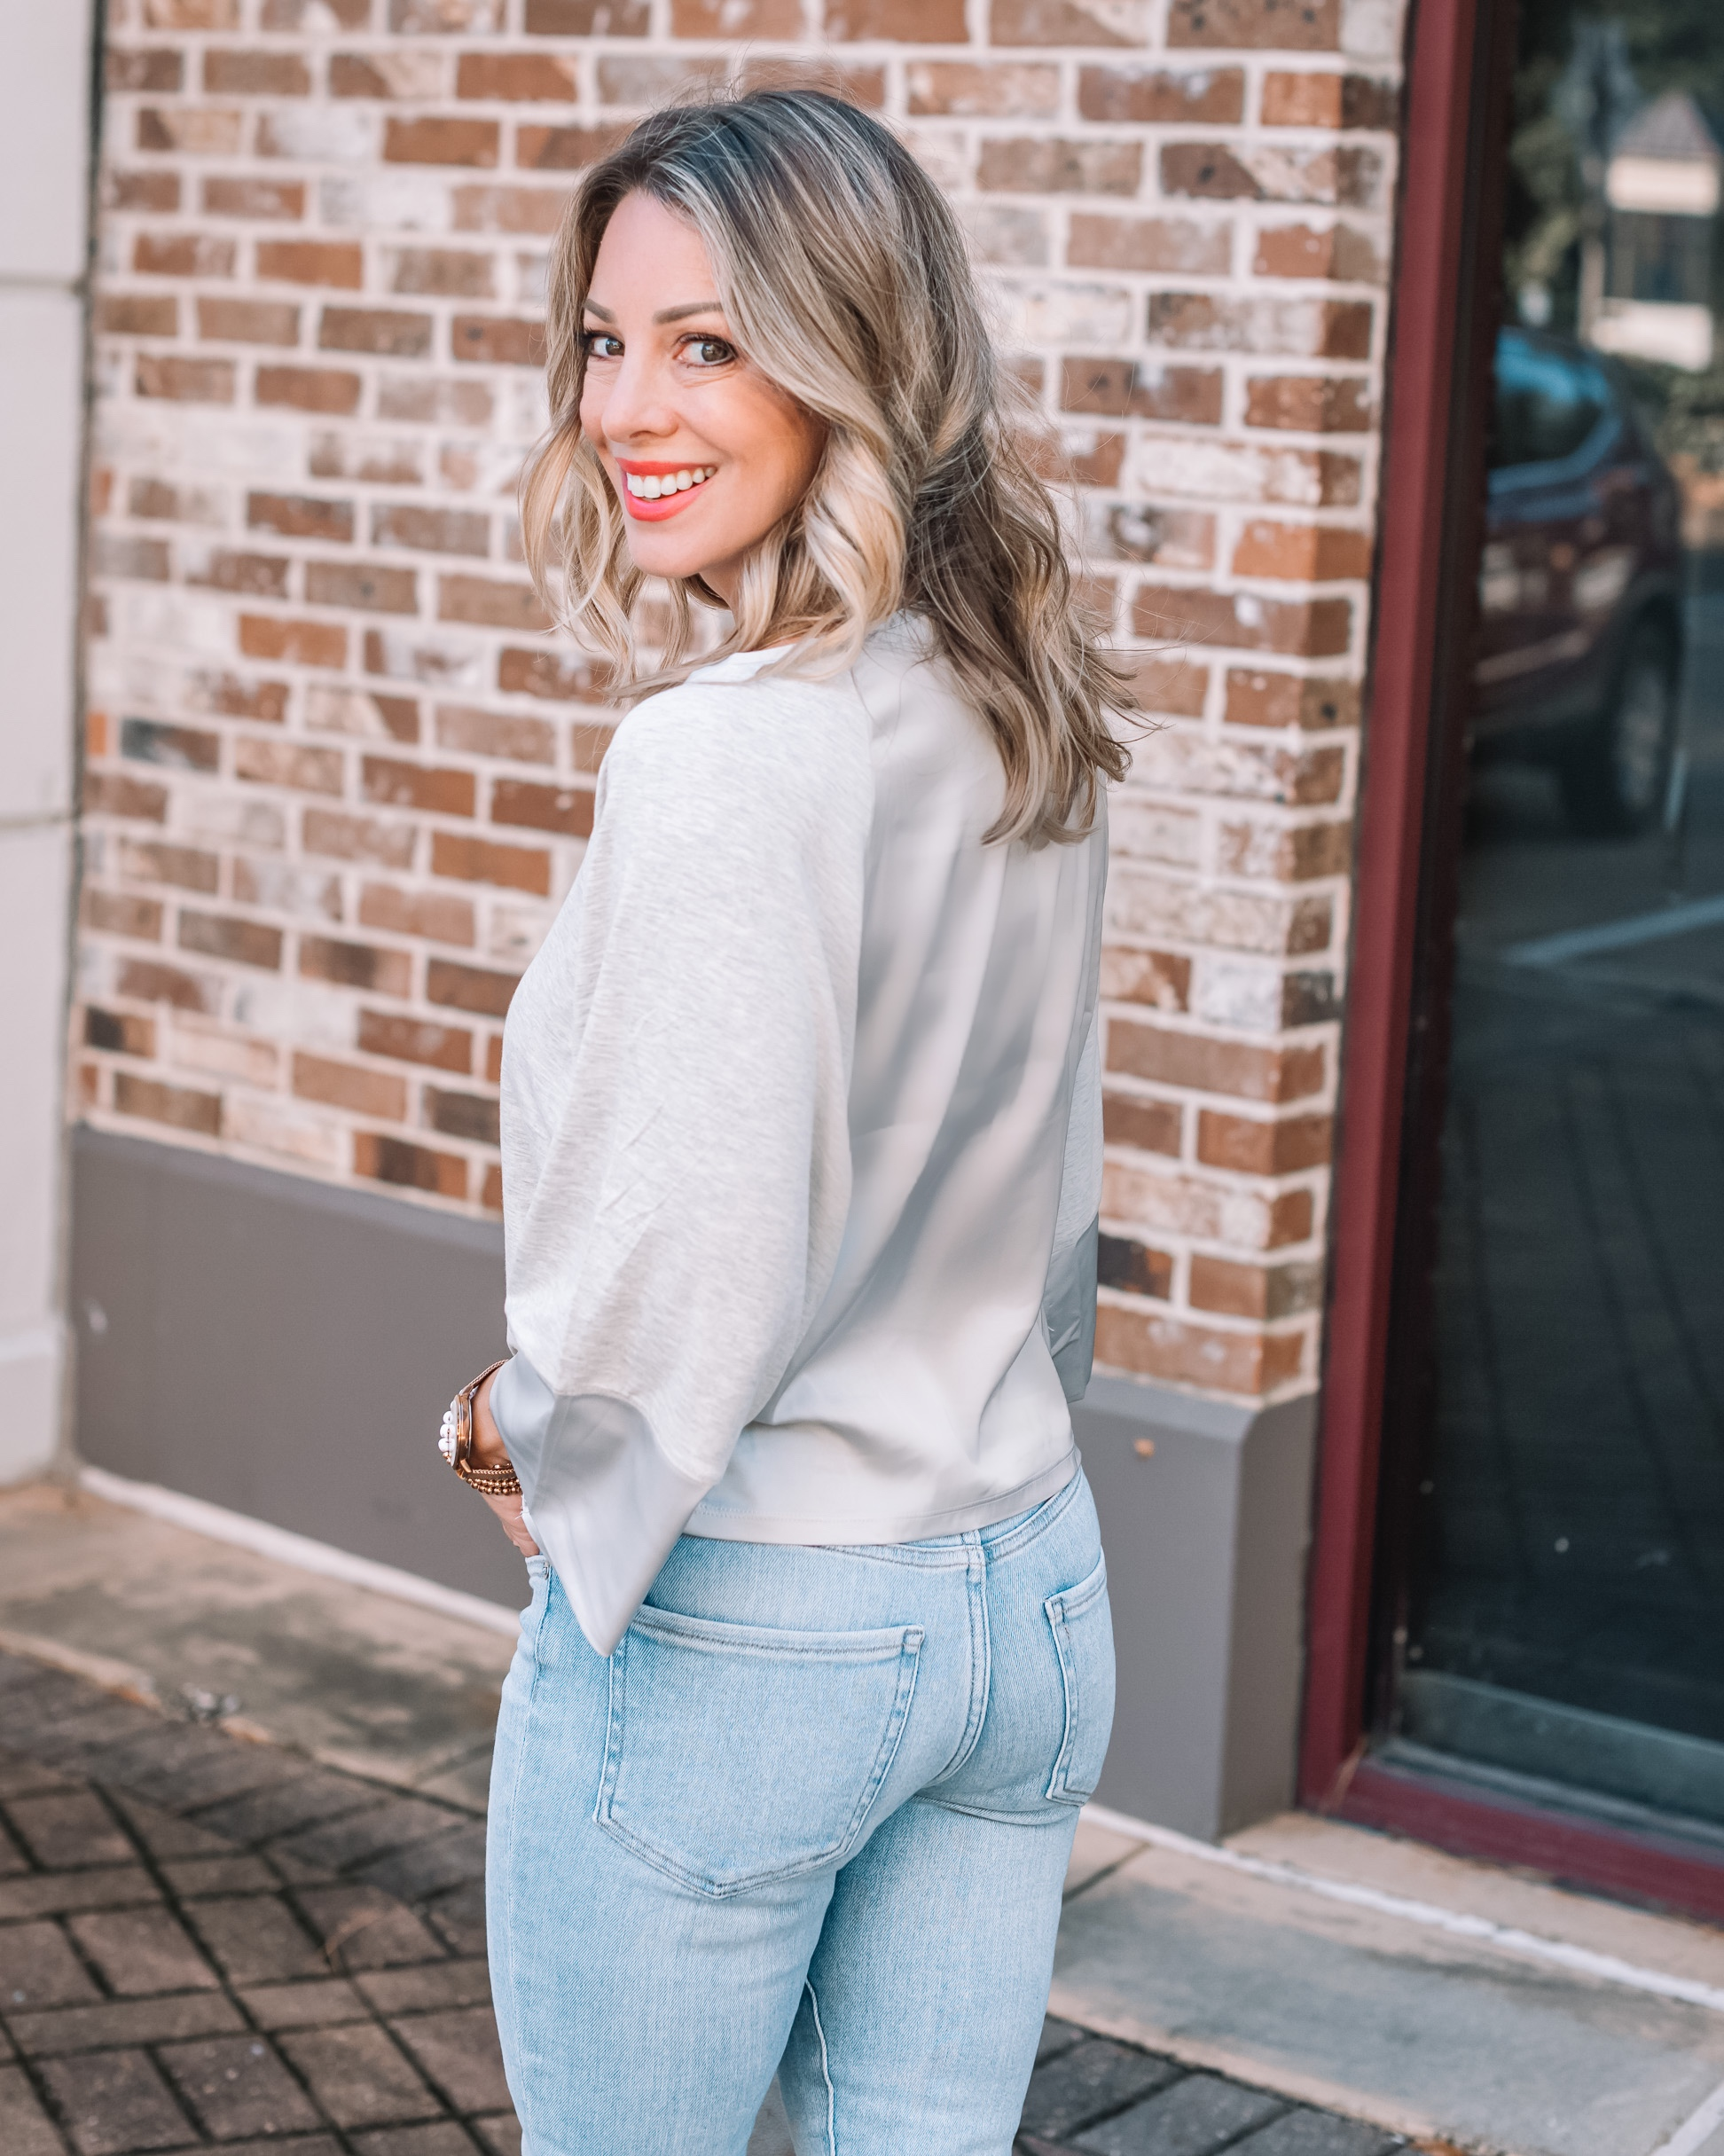 Express Fashion, Gray Tee, Skinny Jeans